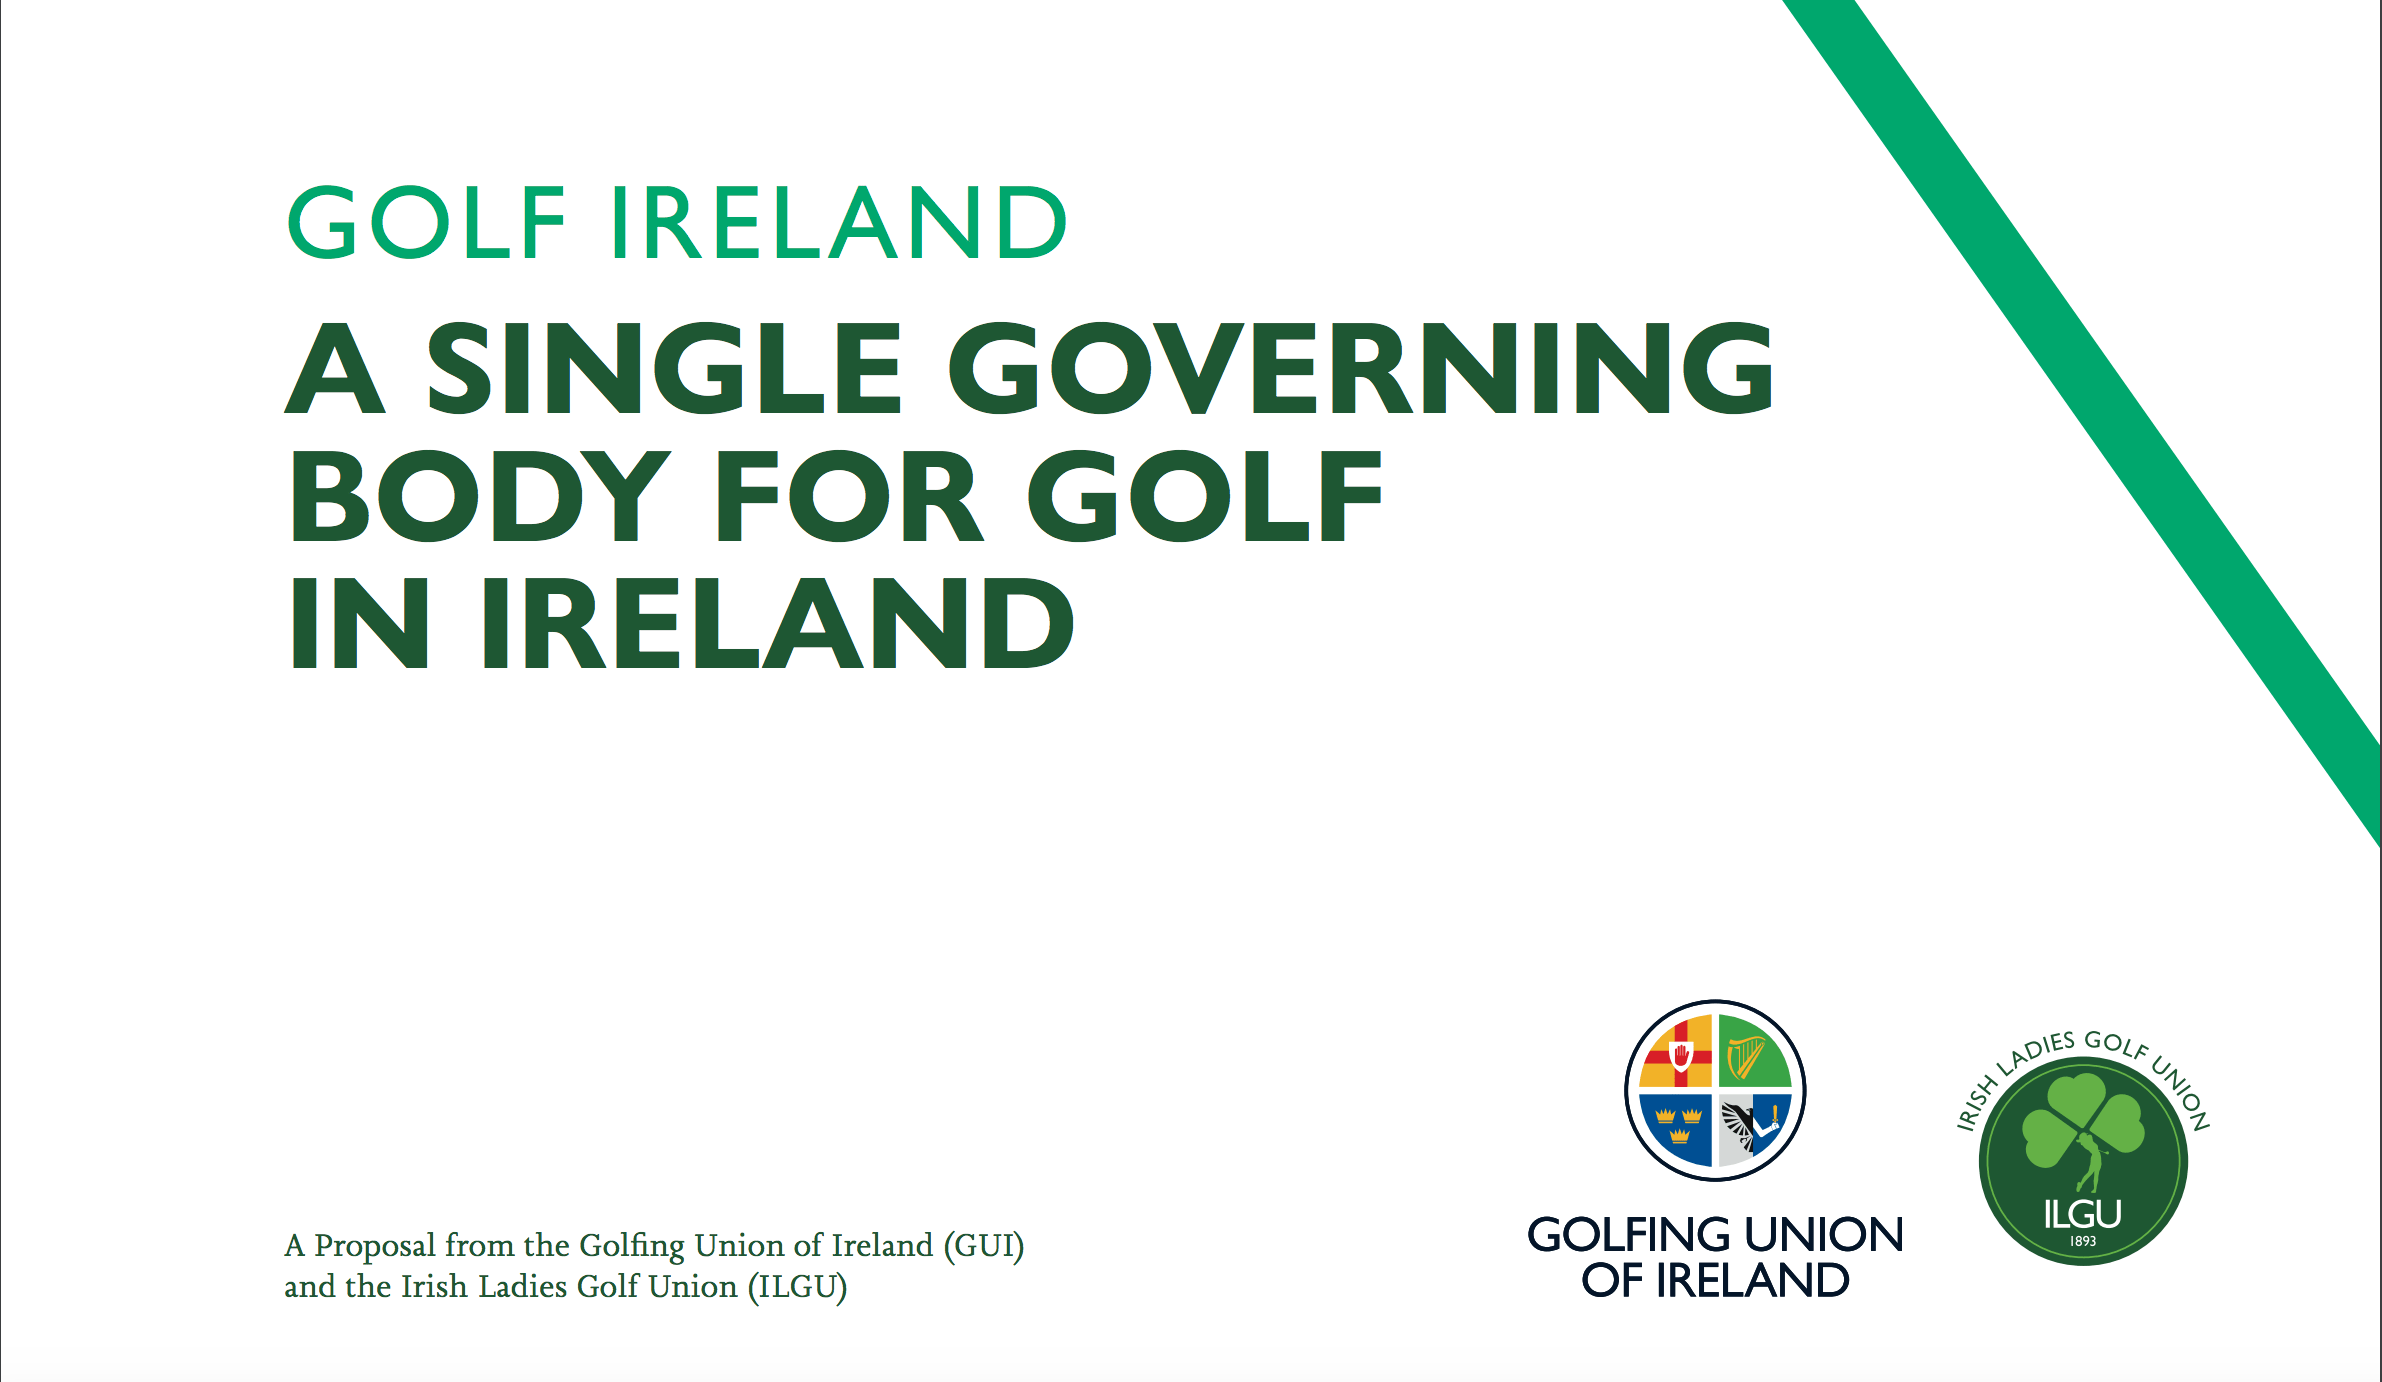 IMPORTANT —-One Governing Body for Golf in Ireland, to be named Golf Ireland